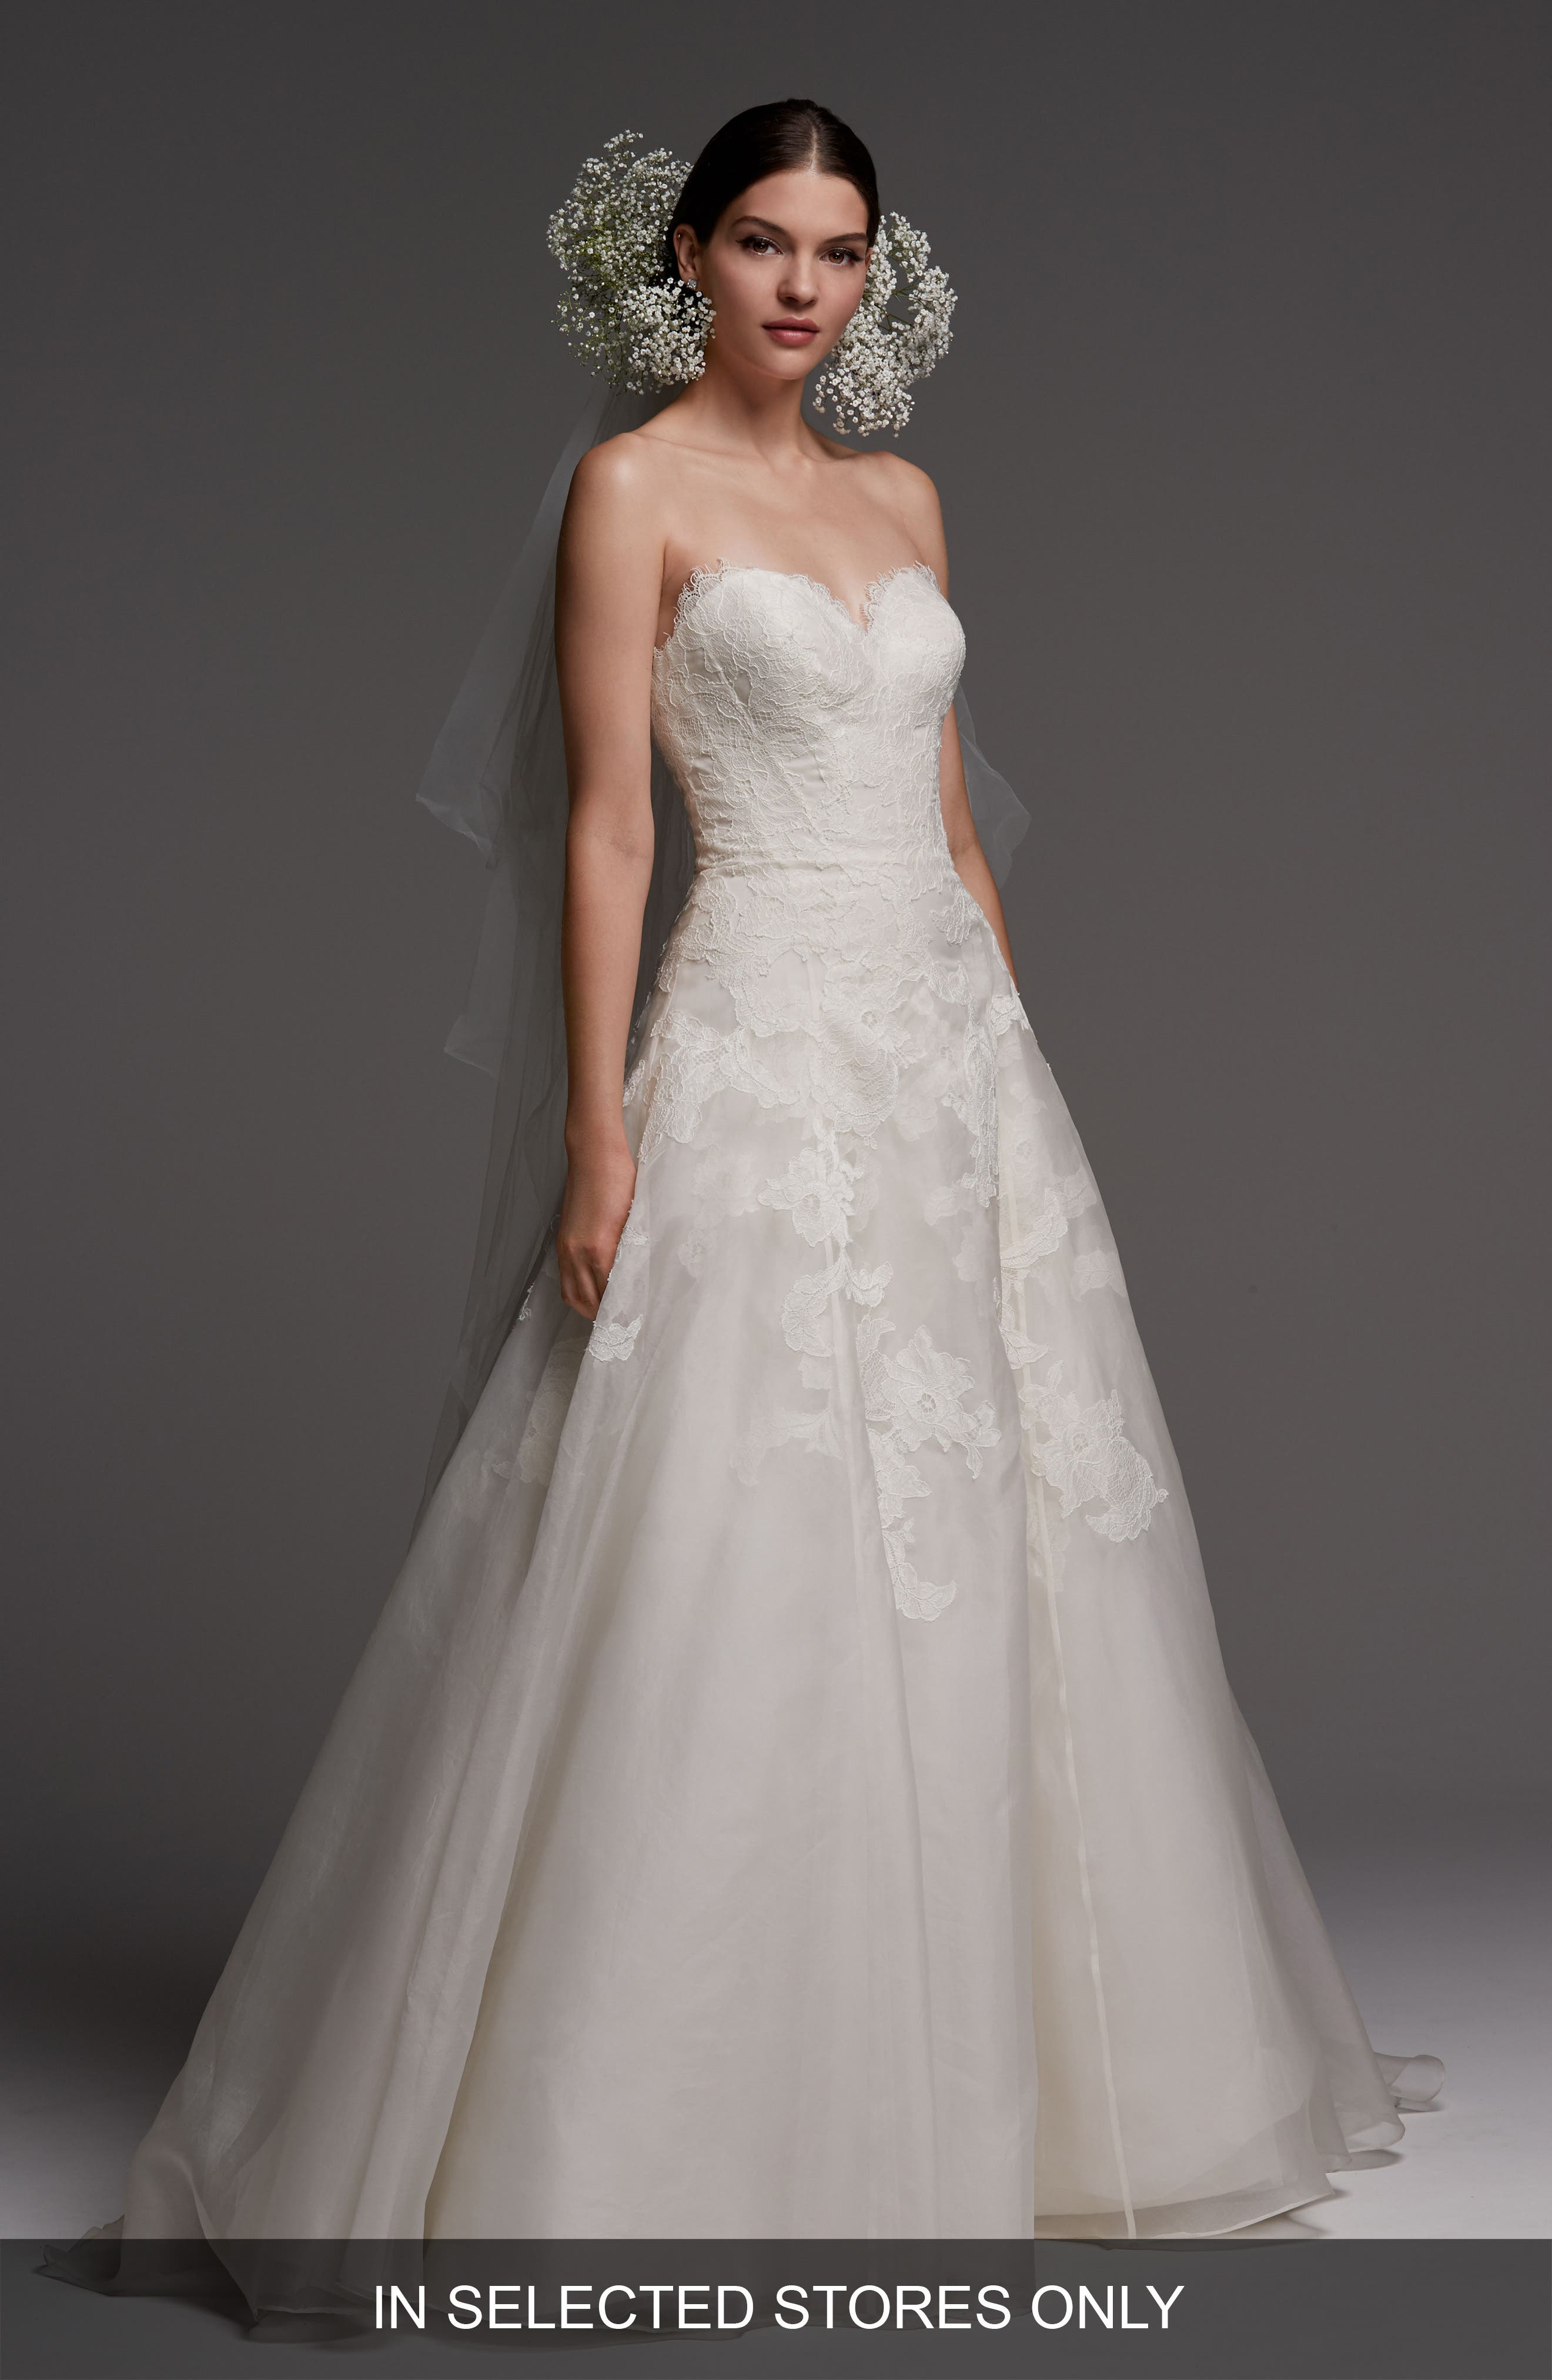 Luxembourg Strapless Lace & Organza Ballgown,                             Main thumbnail 1, color,                             Ivory